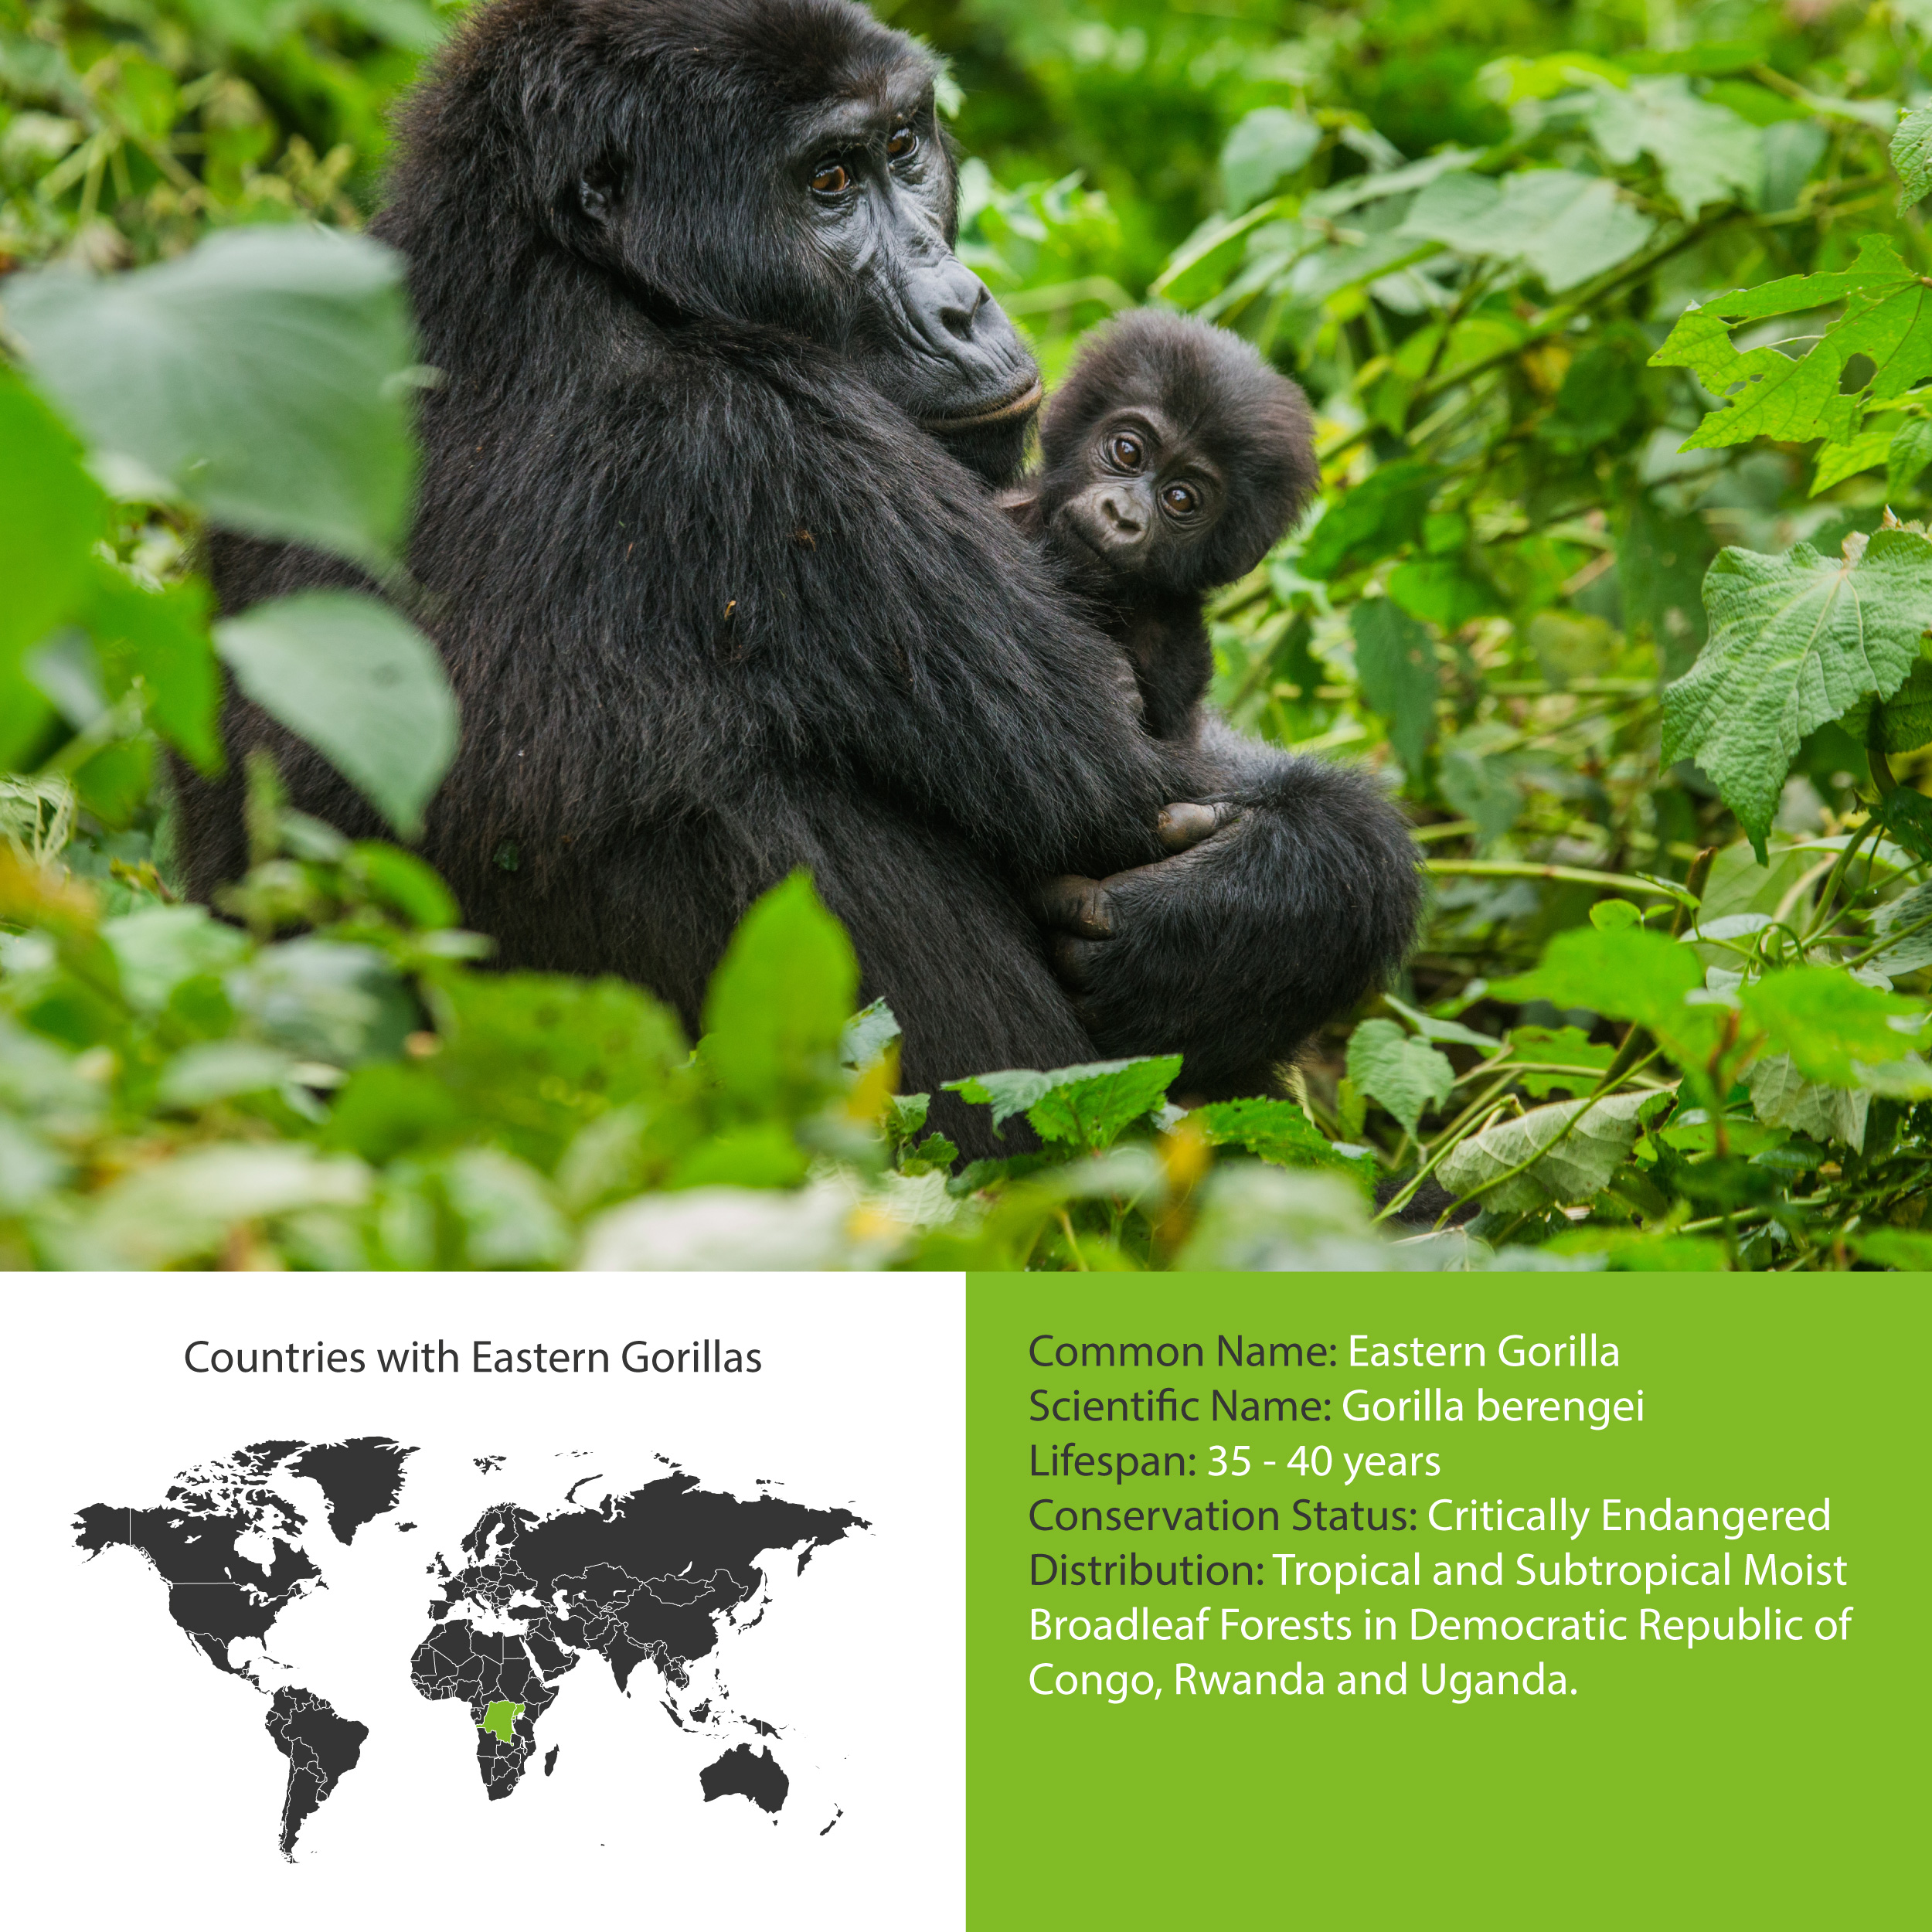 Eastern Gorilla Distribution